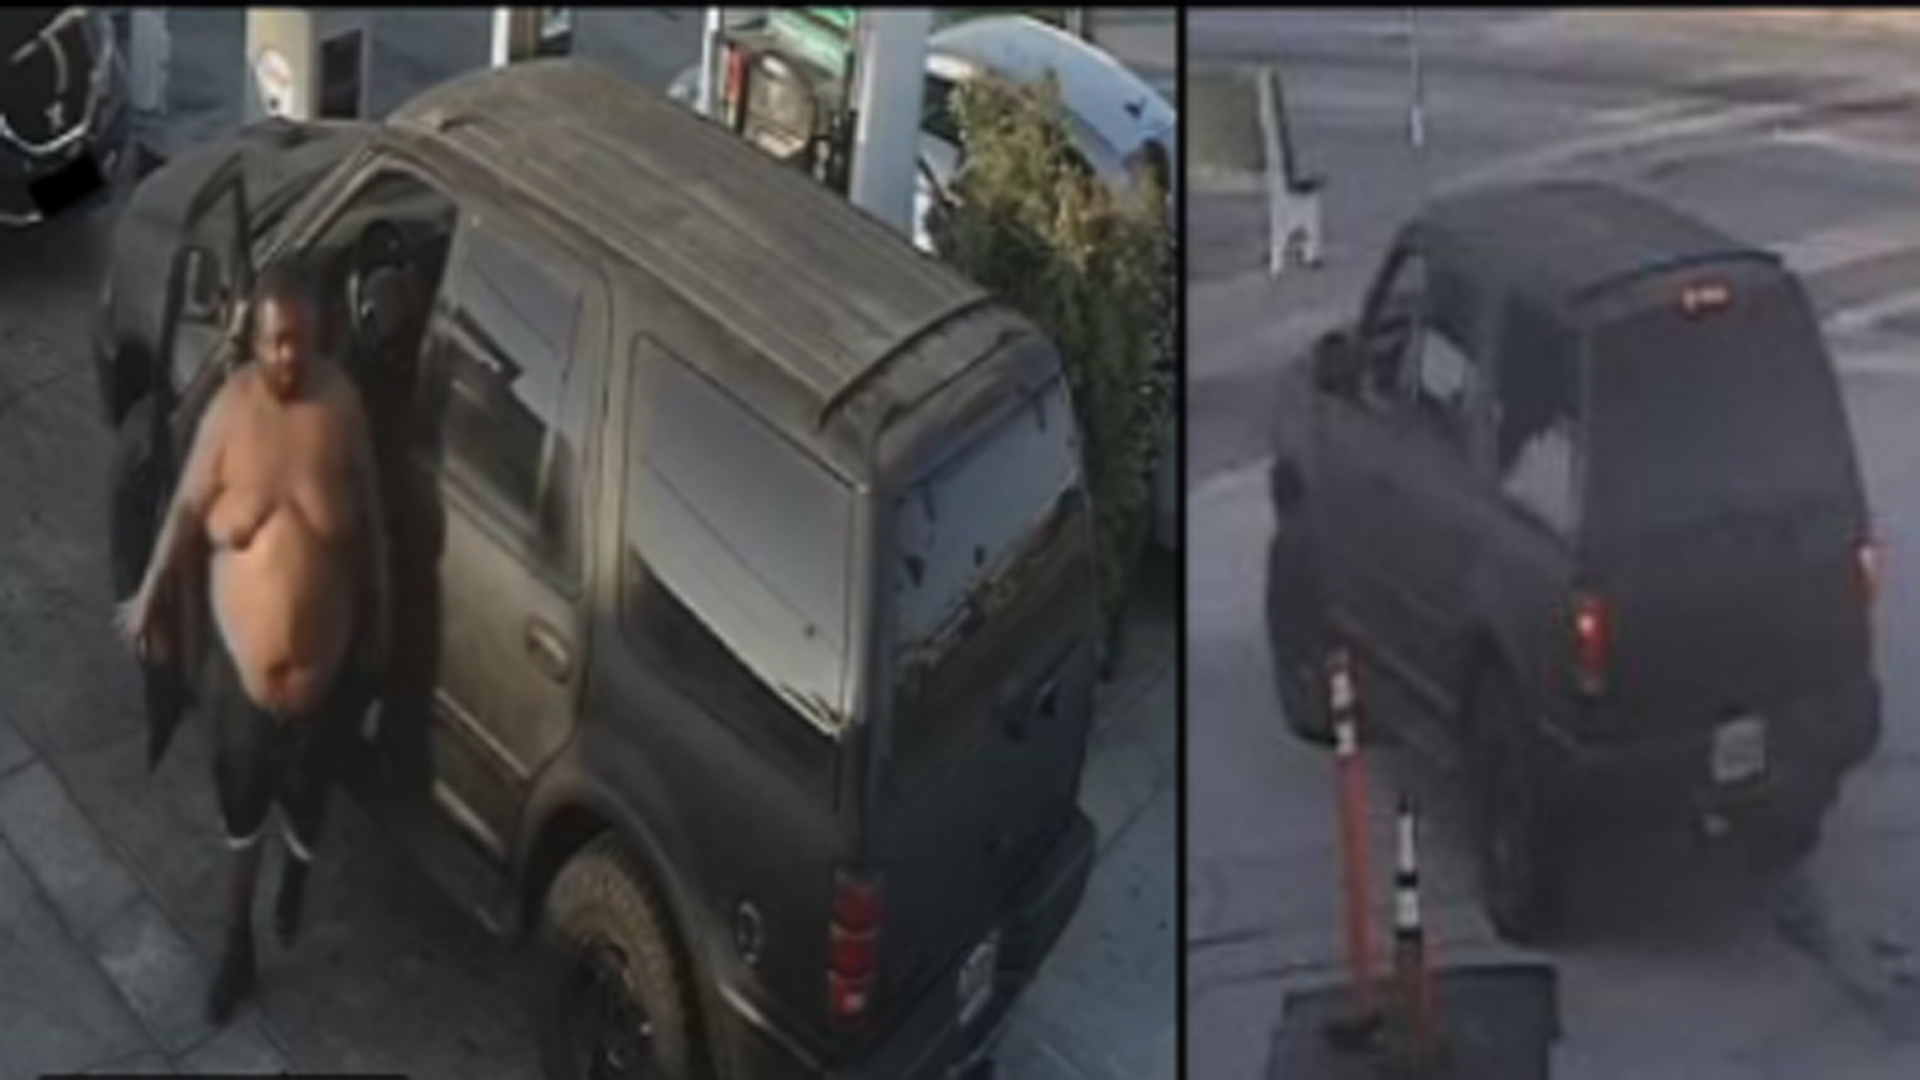 A man caught on video assaulting a woman at a Gardena-area gas station in late May is seen in a still photo released by the L.A. County Sheriff's Department on June 4, 2021.